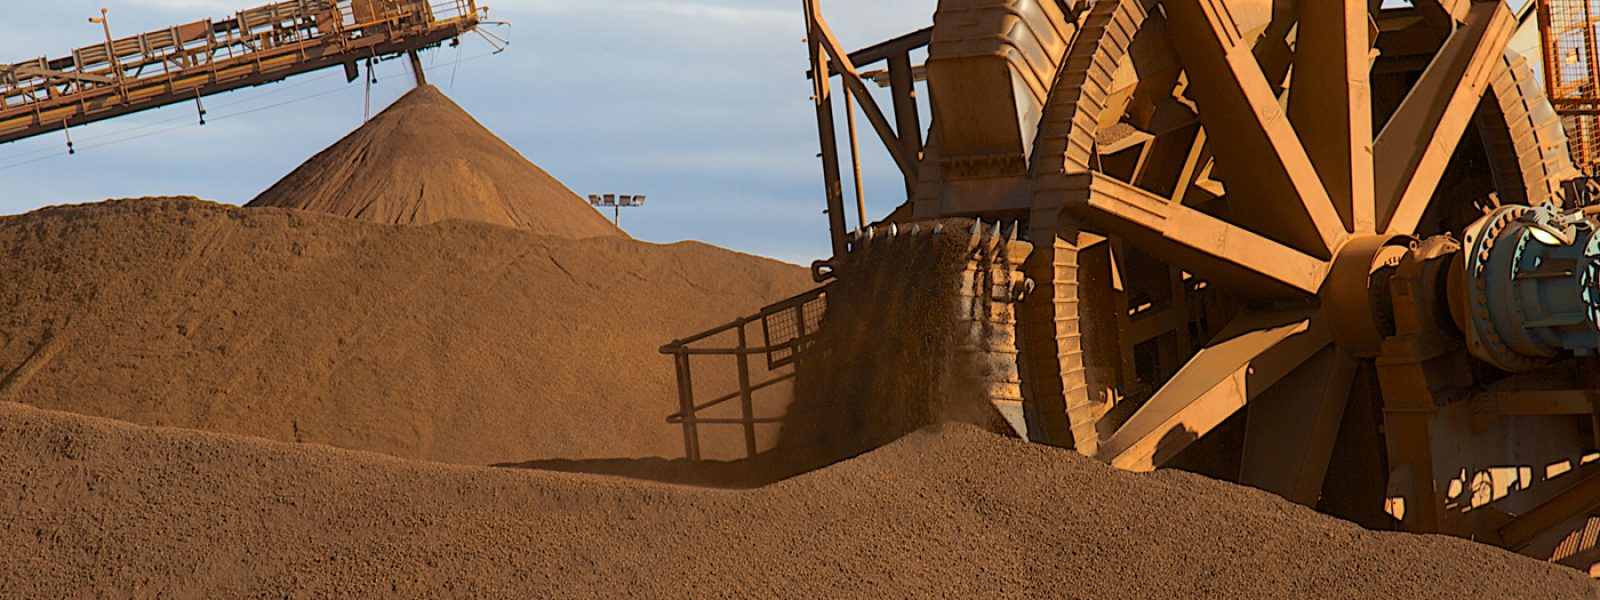 Iron Valley_Iron Ore 1400x600px